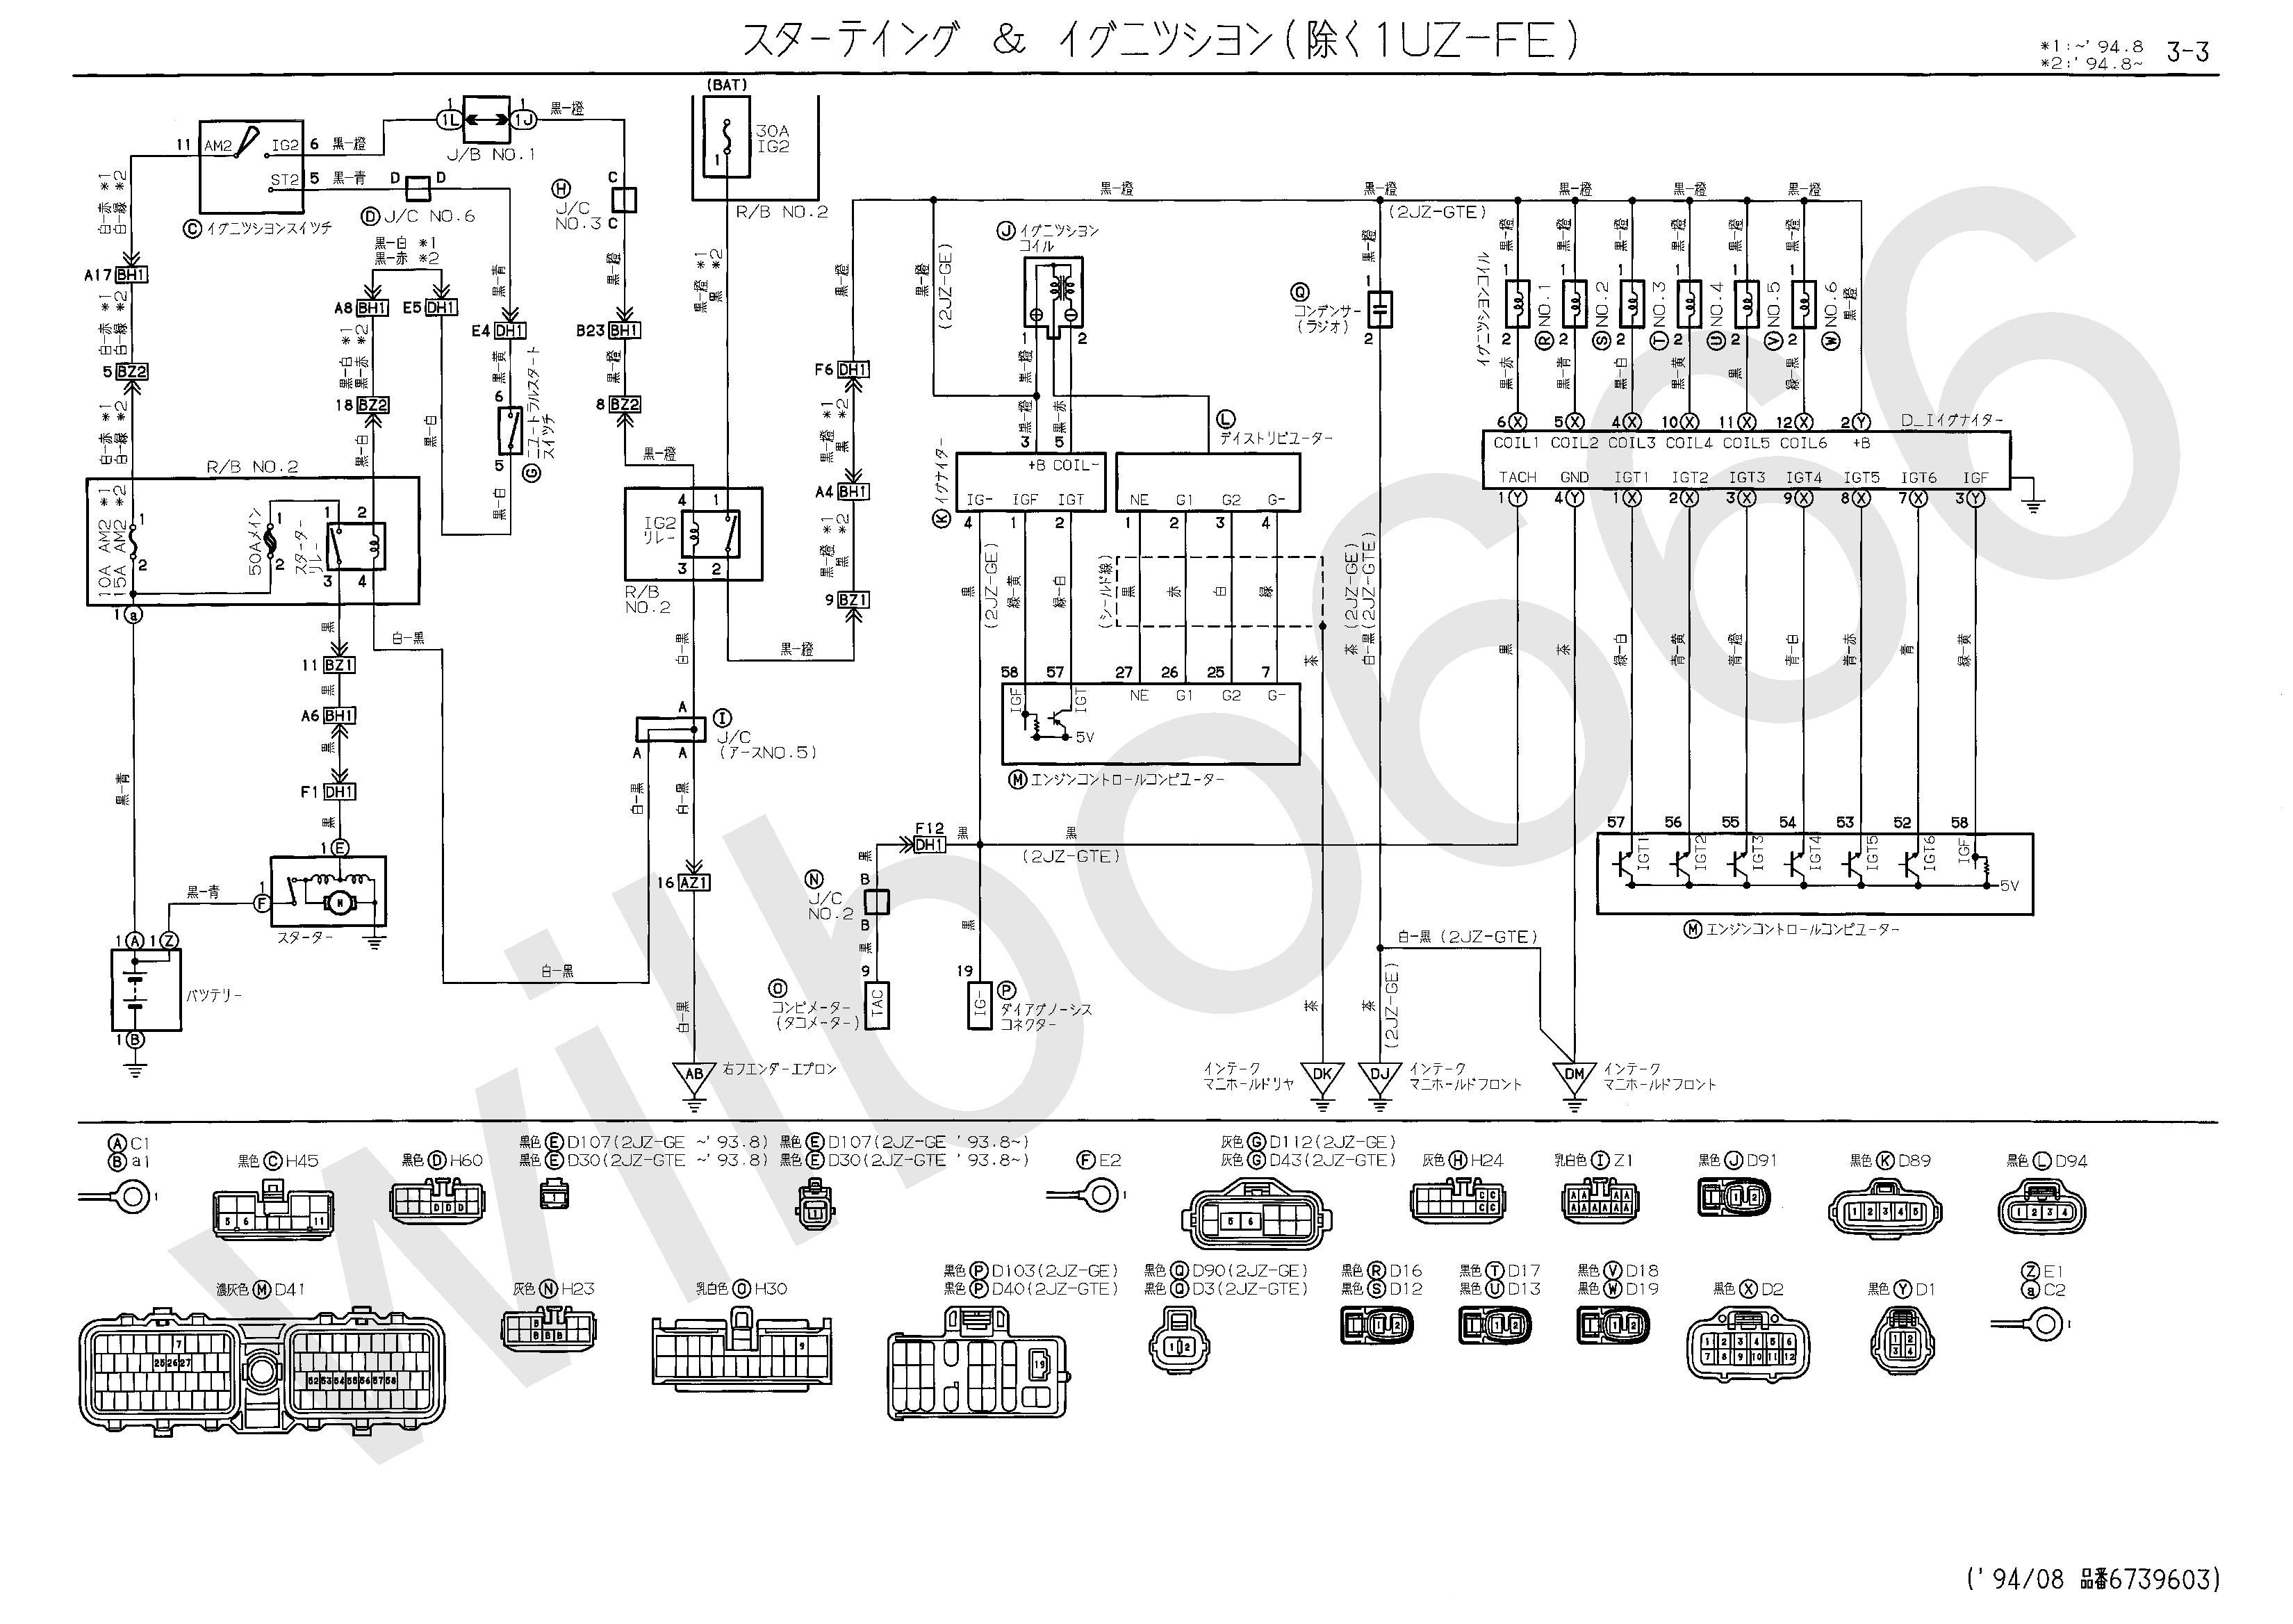 Wilbo666 2jz Gte Jzs147 Aristo Engine Wiring 1995 W 4 Electrical Diagrams Toyota